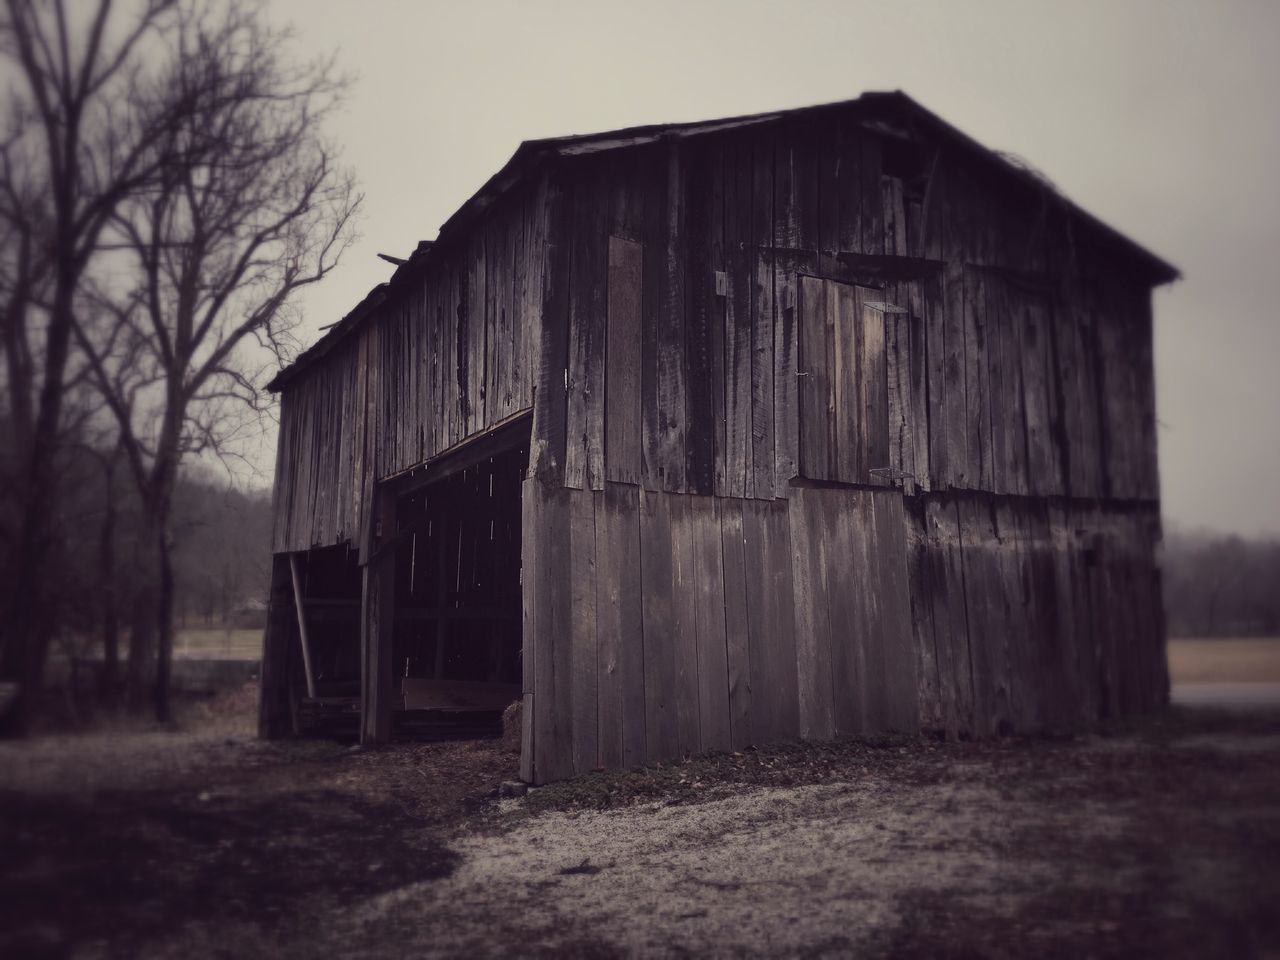 abandoned, built structure, architecture, barn, no people, wood - material, building exterior, outdoors, clear sky, day, sky, desolate, nature